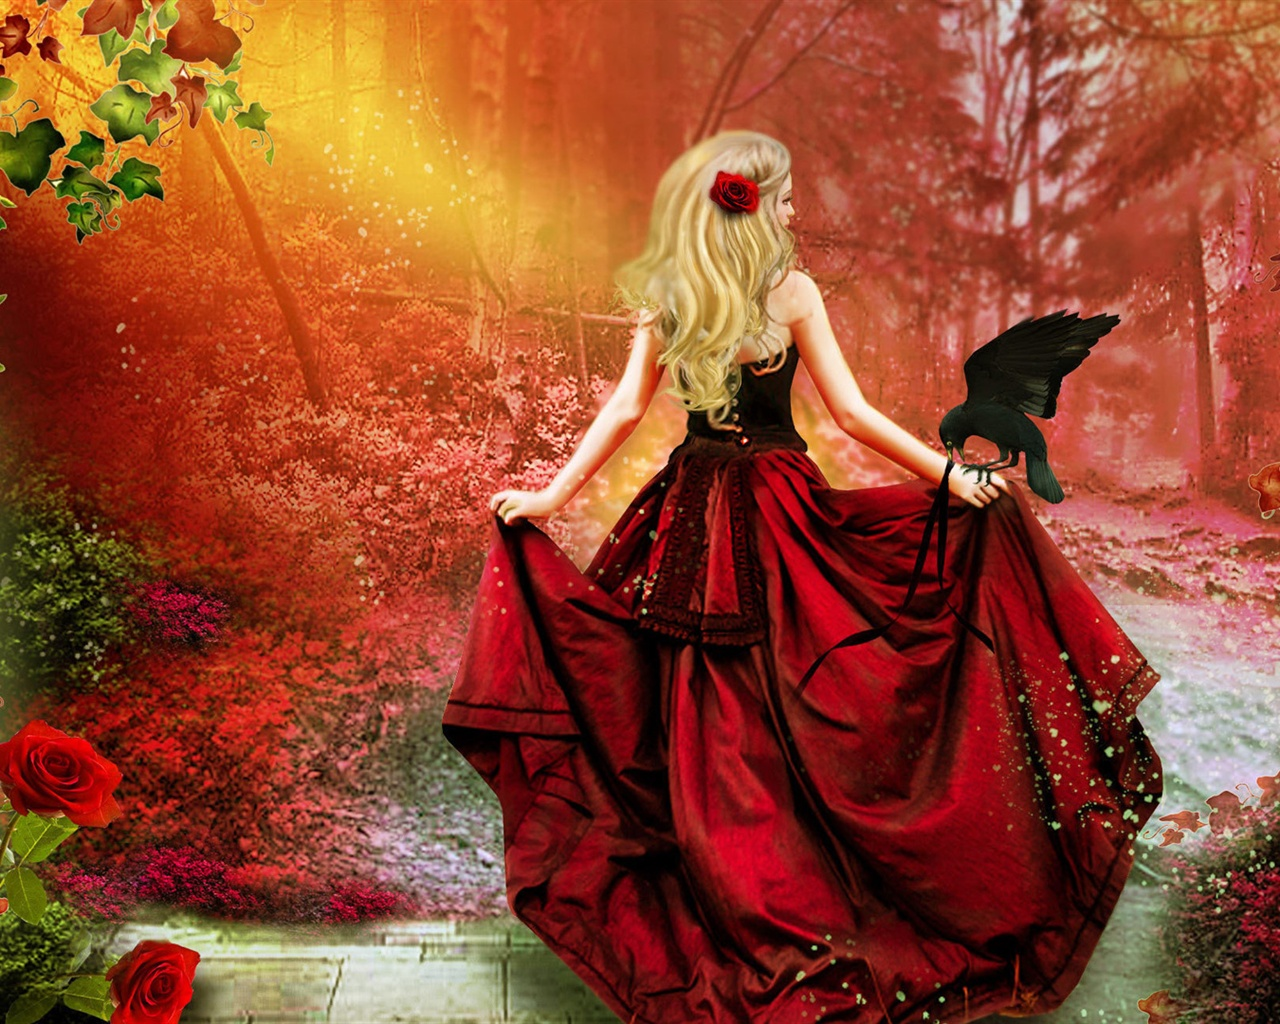 Art Fantasy Red Dress Girl Blonde Hair Crow Red Forest 640x960 Iphone 4 4s Wallpaper Background Picture Image